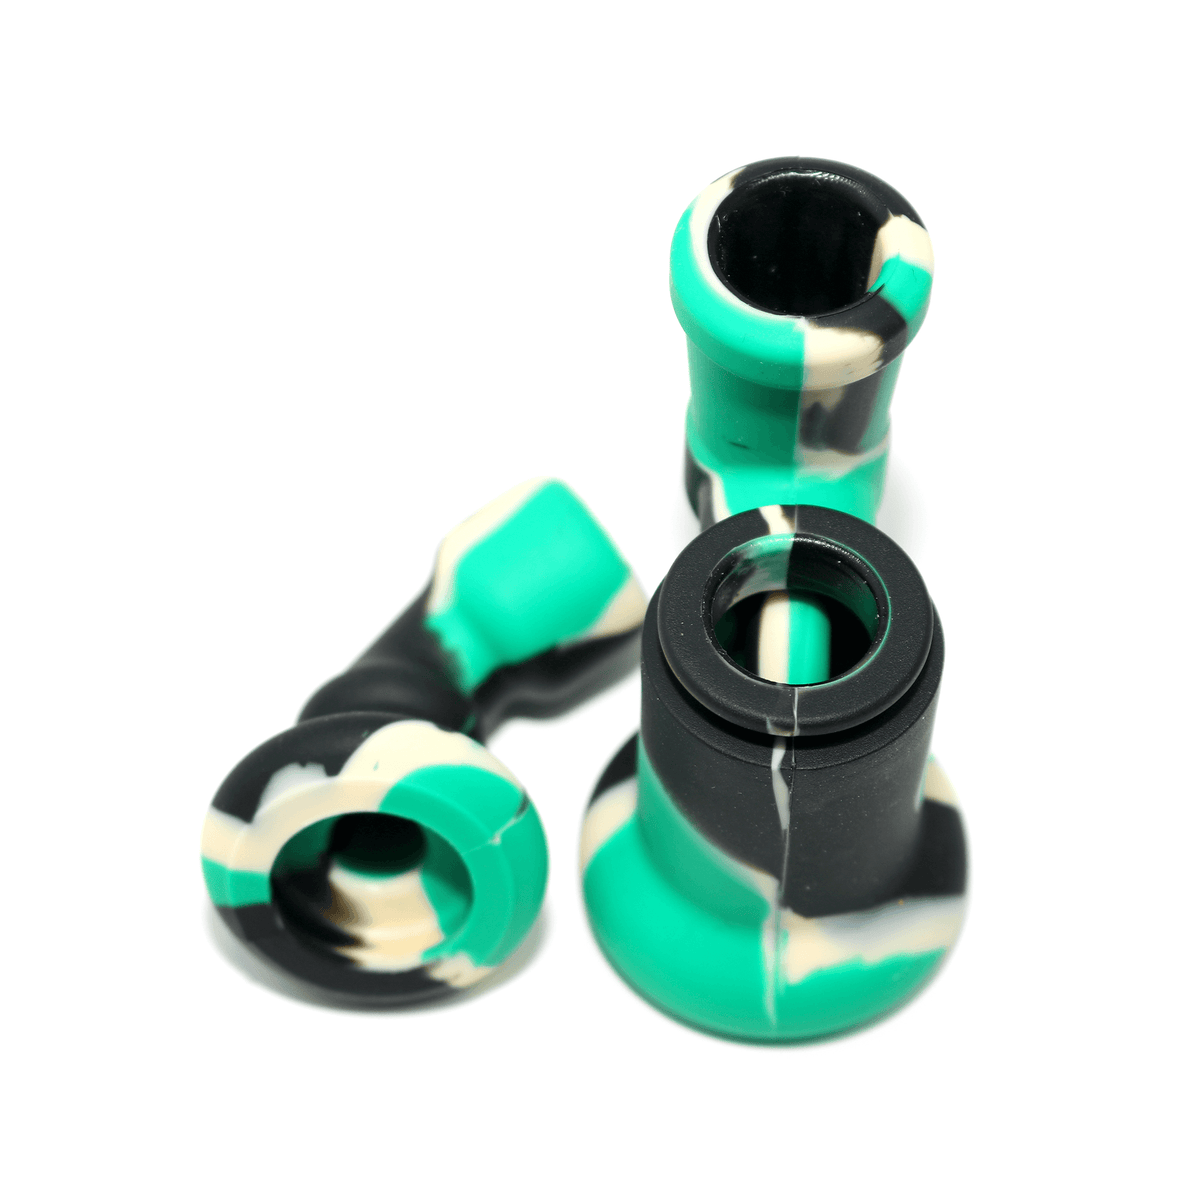 Mini Silicone Bubbler Rig With Glass Bowl - Green-Black-Apart